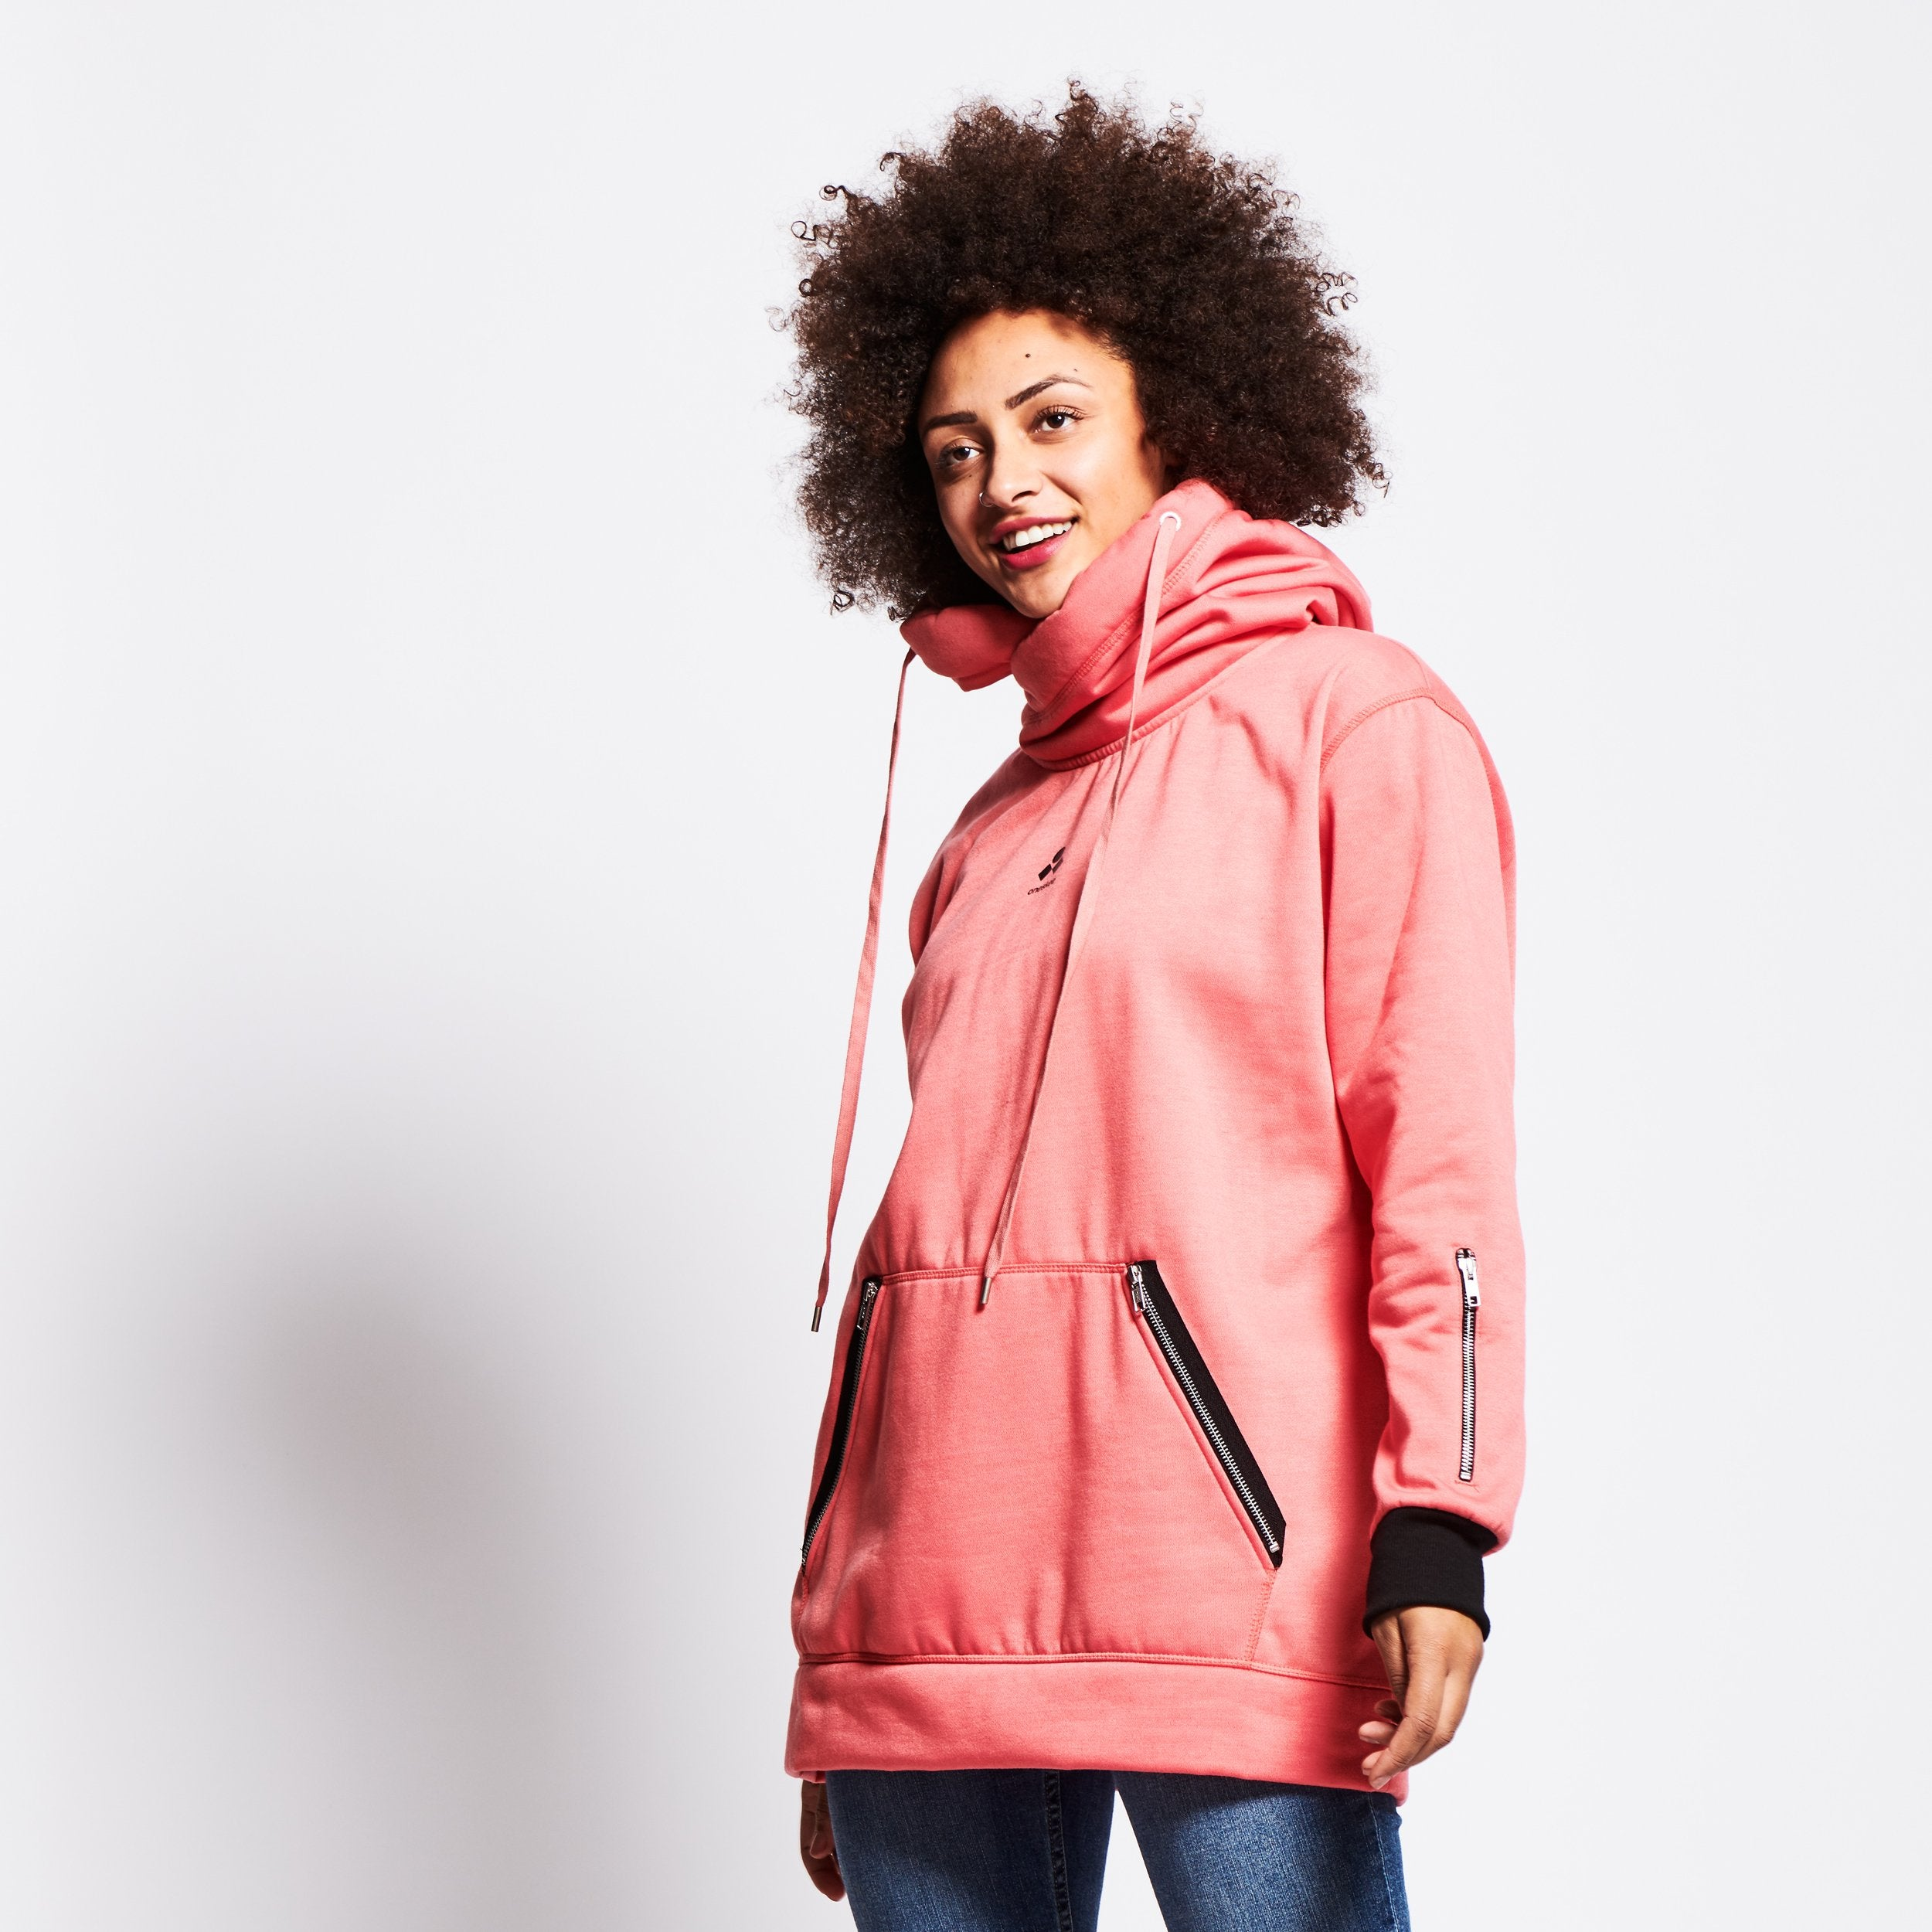 Women's Technical X-Neck Hoodie  - Pink image 1